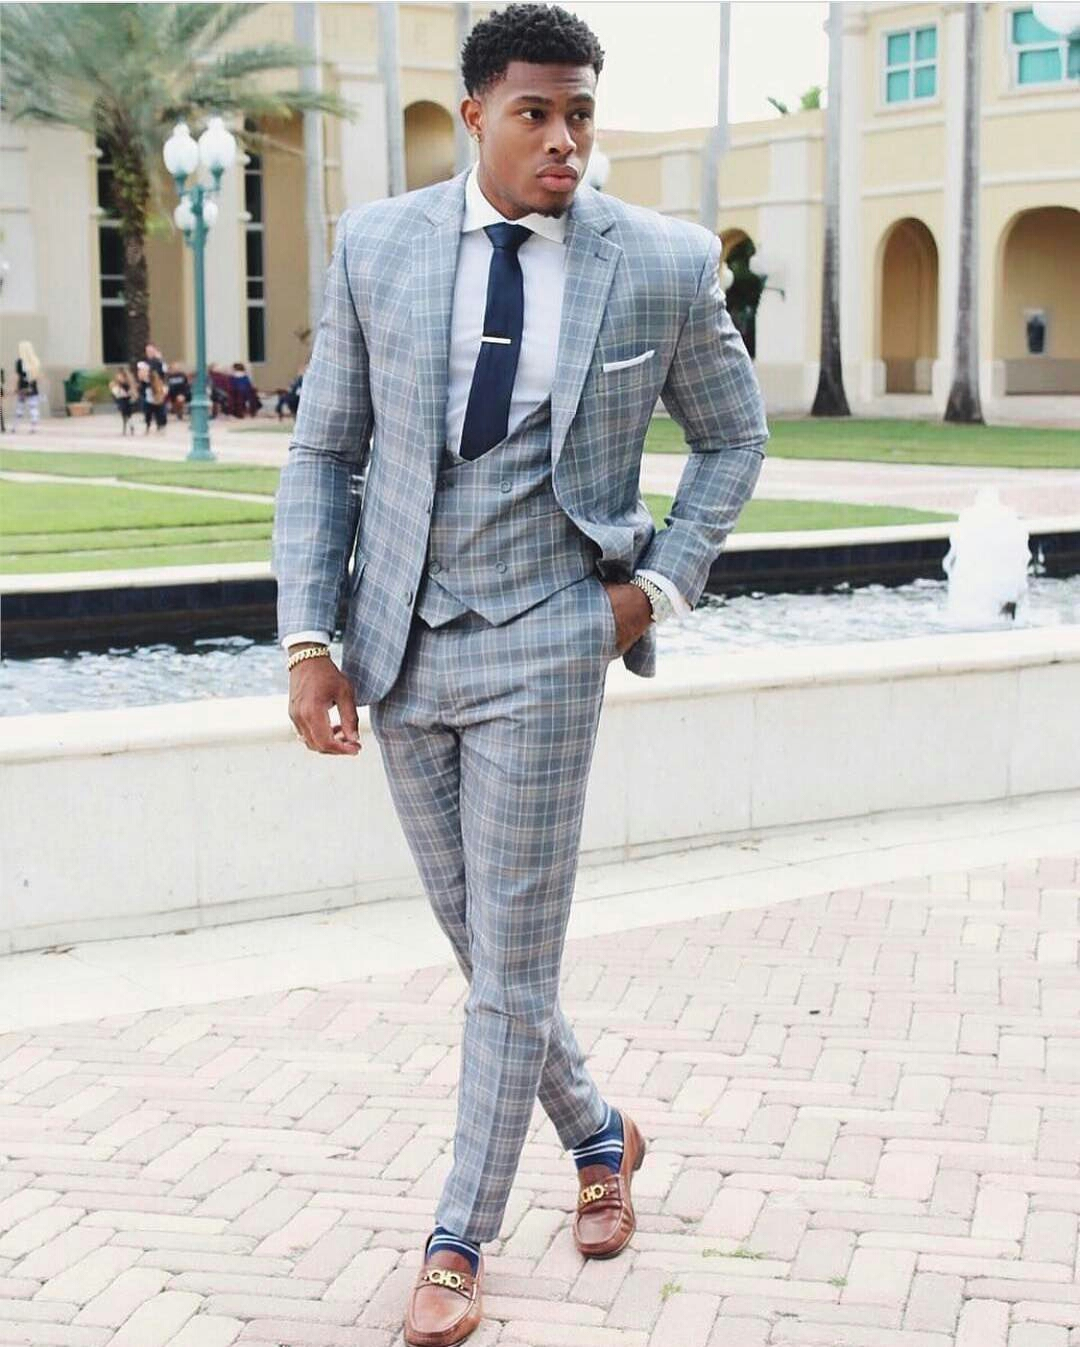 20 Modern Men's Suit Styles that Are Too Cool for Words3